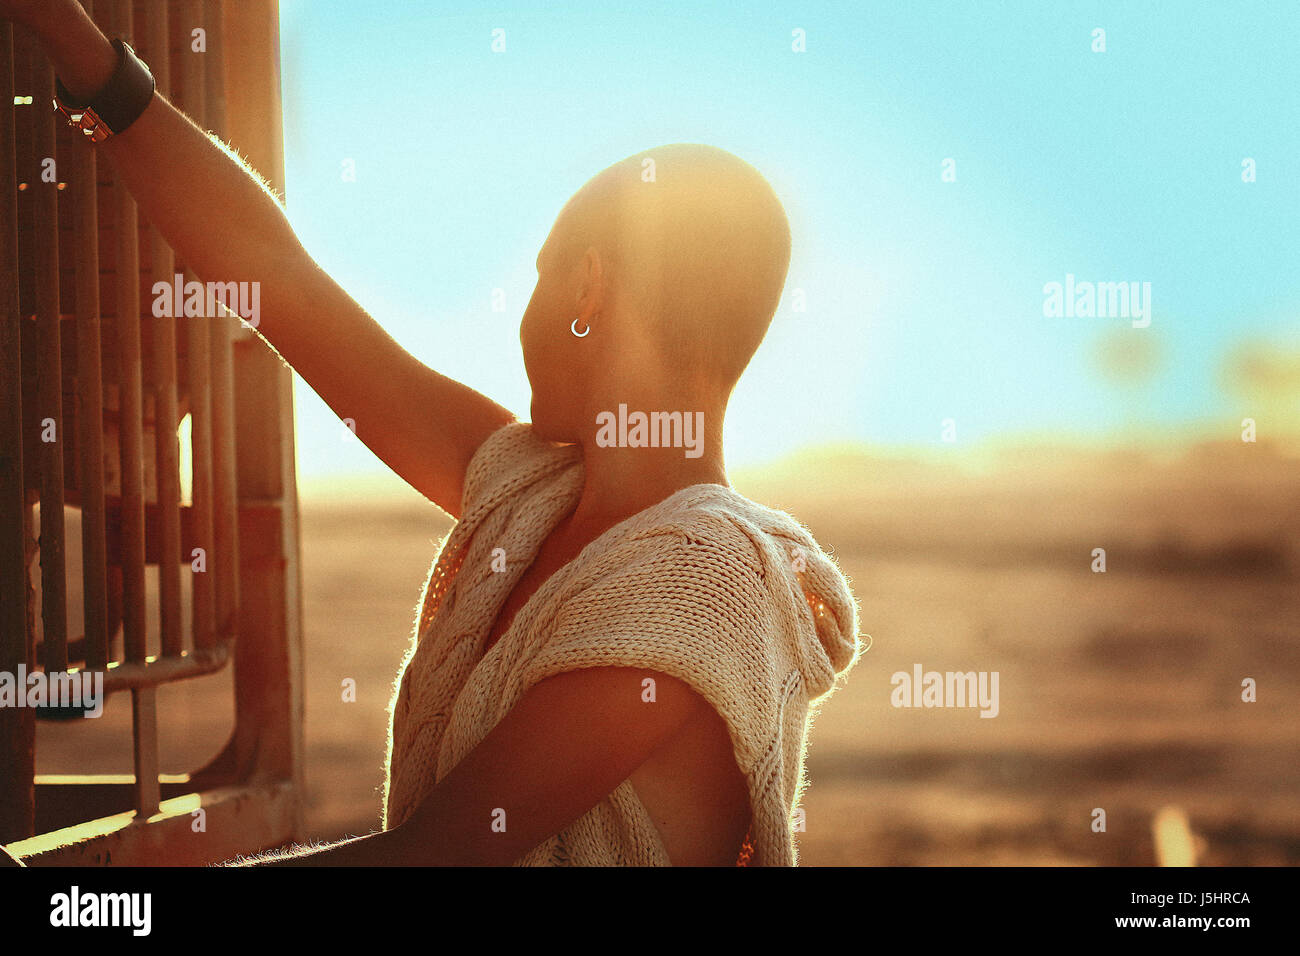 Shaved-headed girl silhouette on the sunset scenery, desert view with blue sky and sands,old vintage trains and - Stock Image